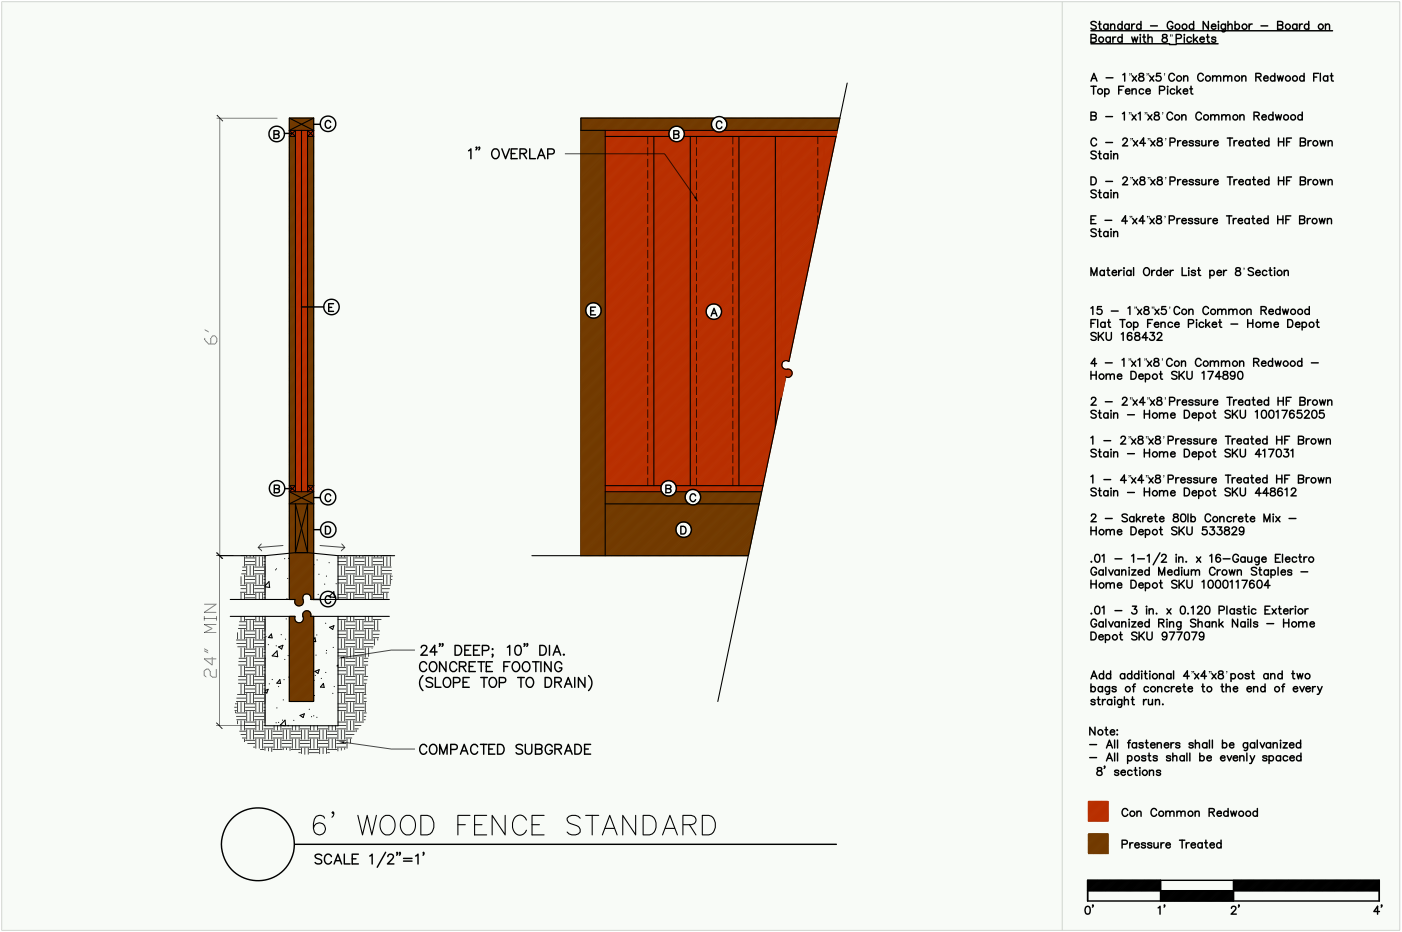 wood-fence-detail@2x